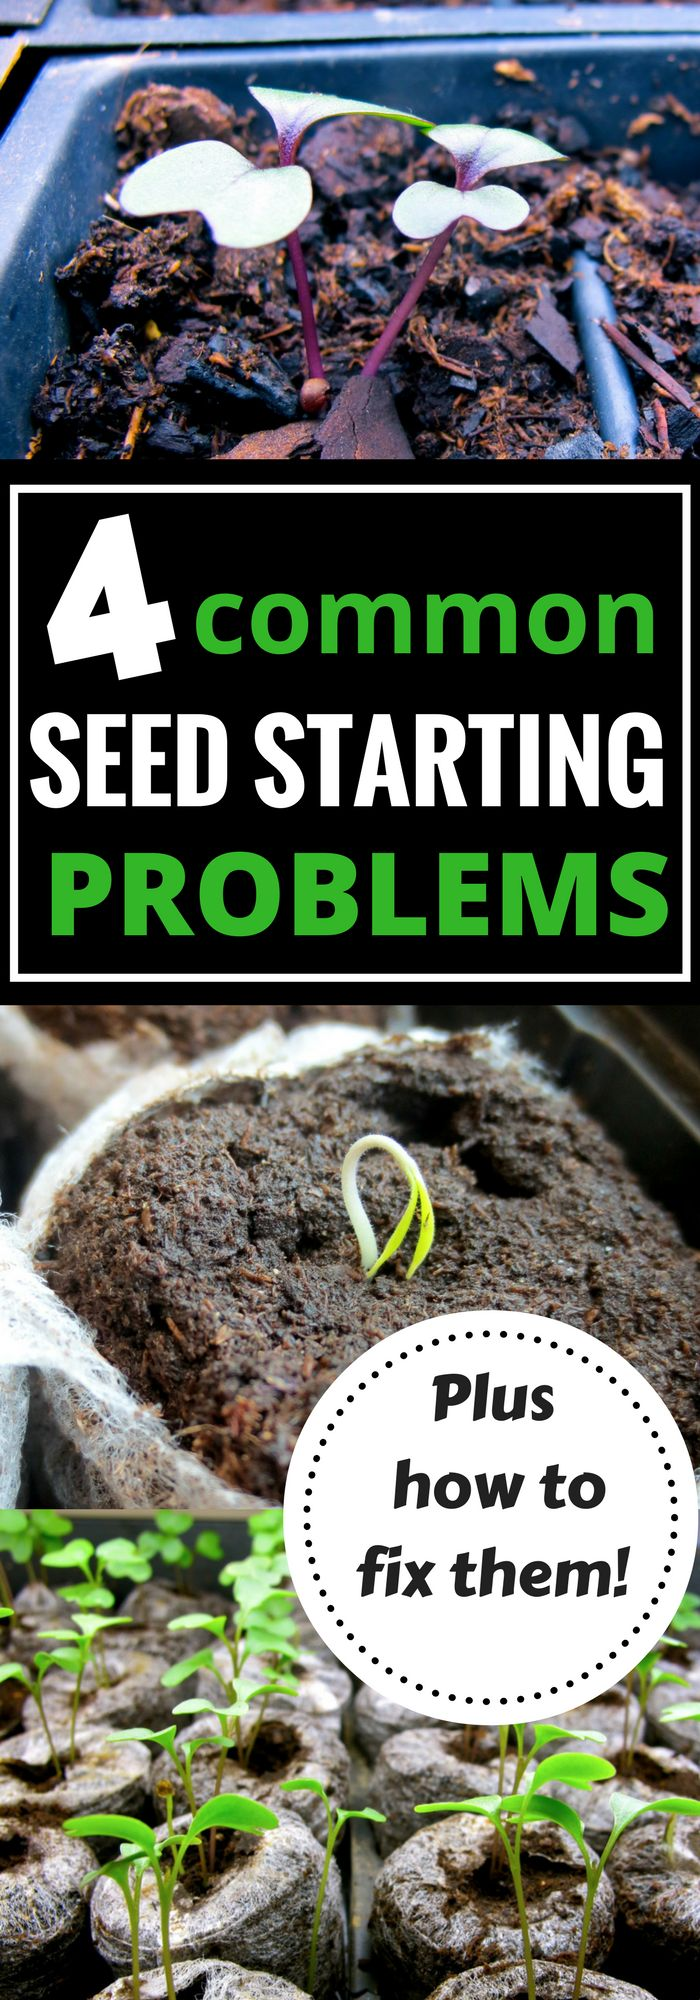 Trying to start your seeds indoors this spring? Learn these common seed starting problems AND how to fix them!